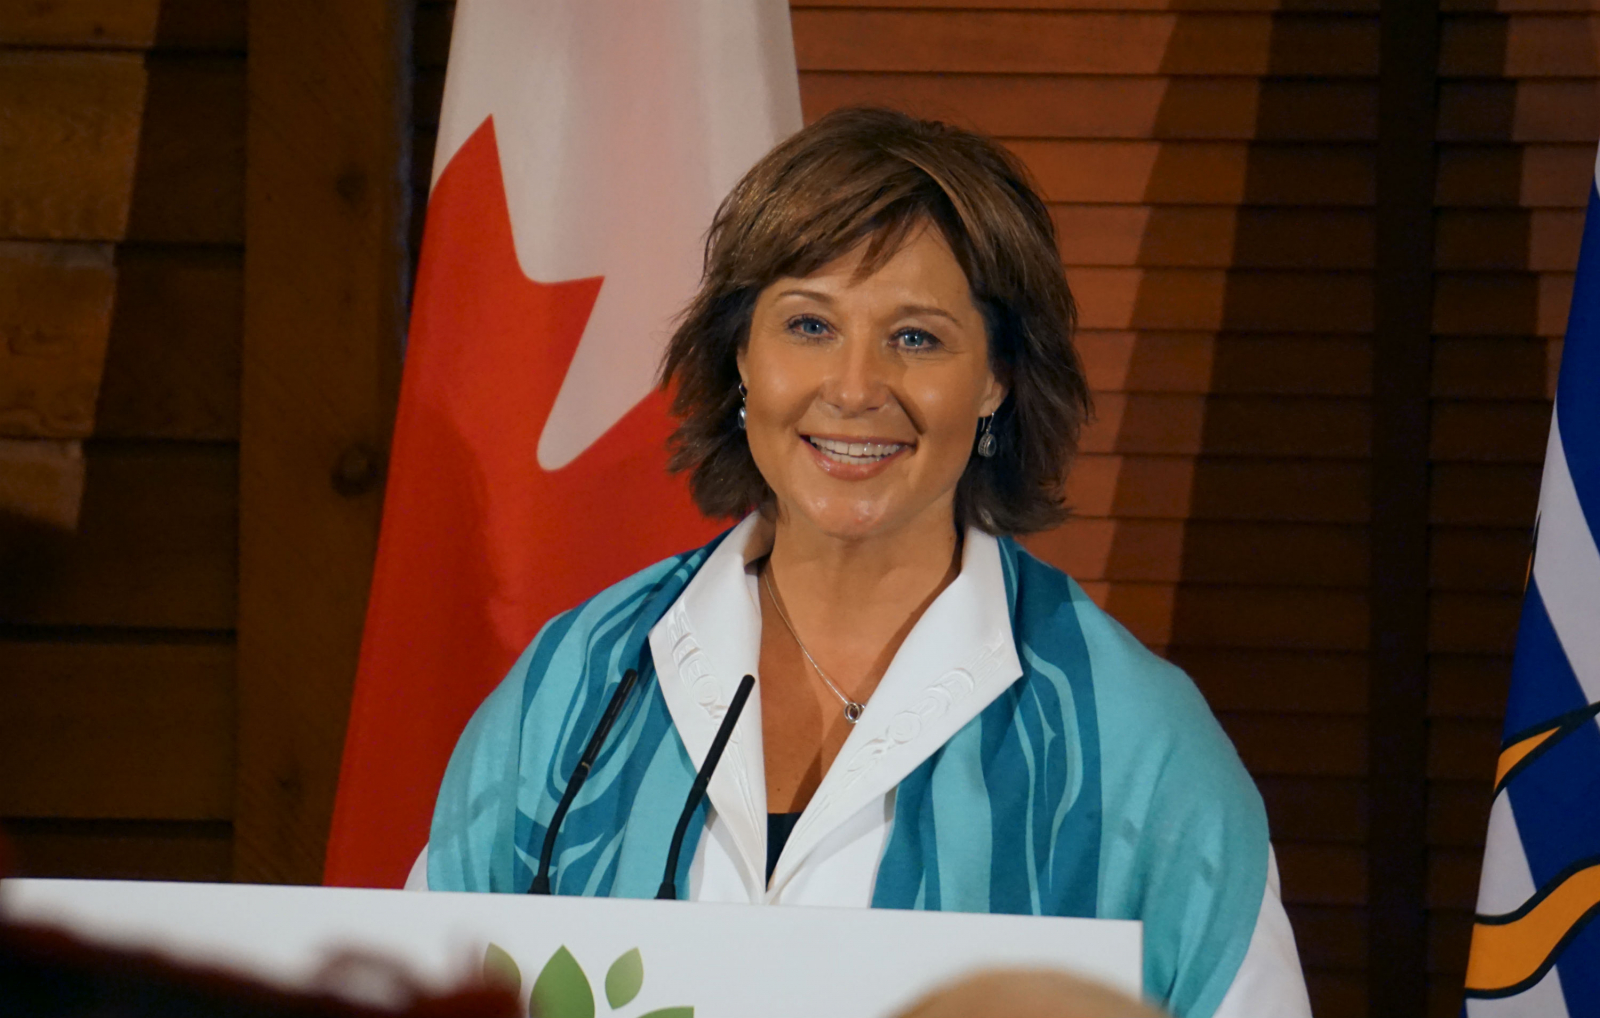 Christy Clark, Great Bear Rainforest, B.C. premier, timber industry, conservation